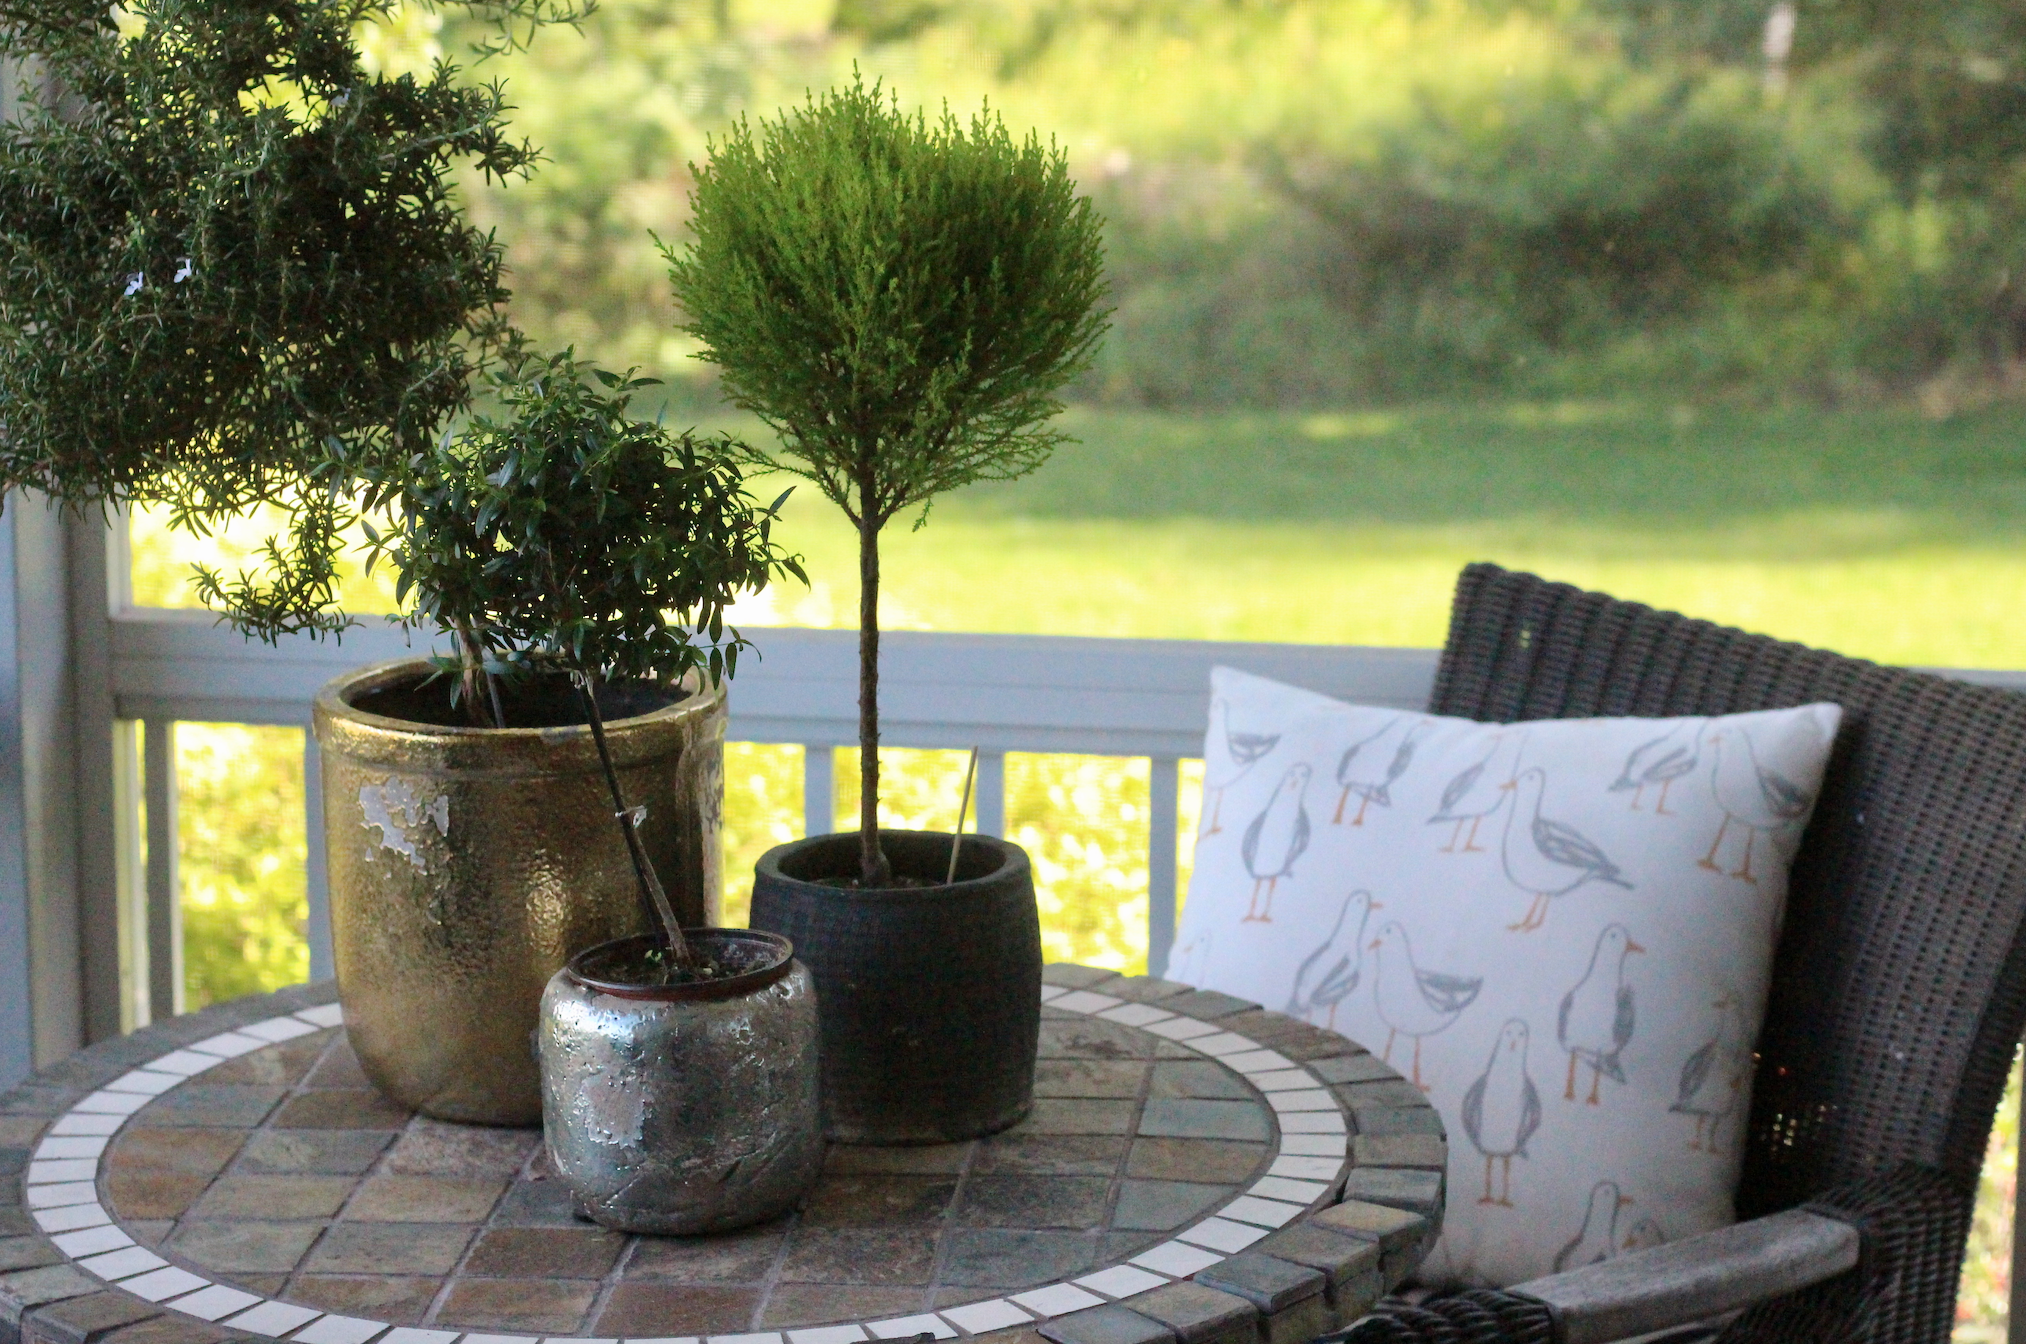 Topiaries on a patio.